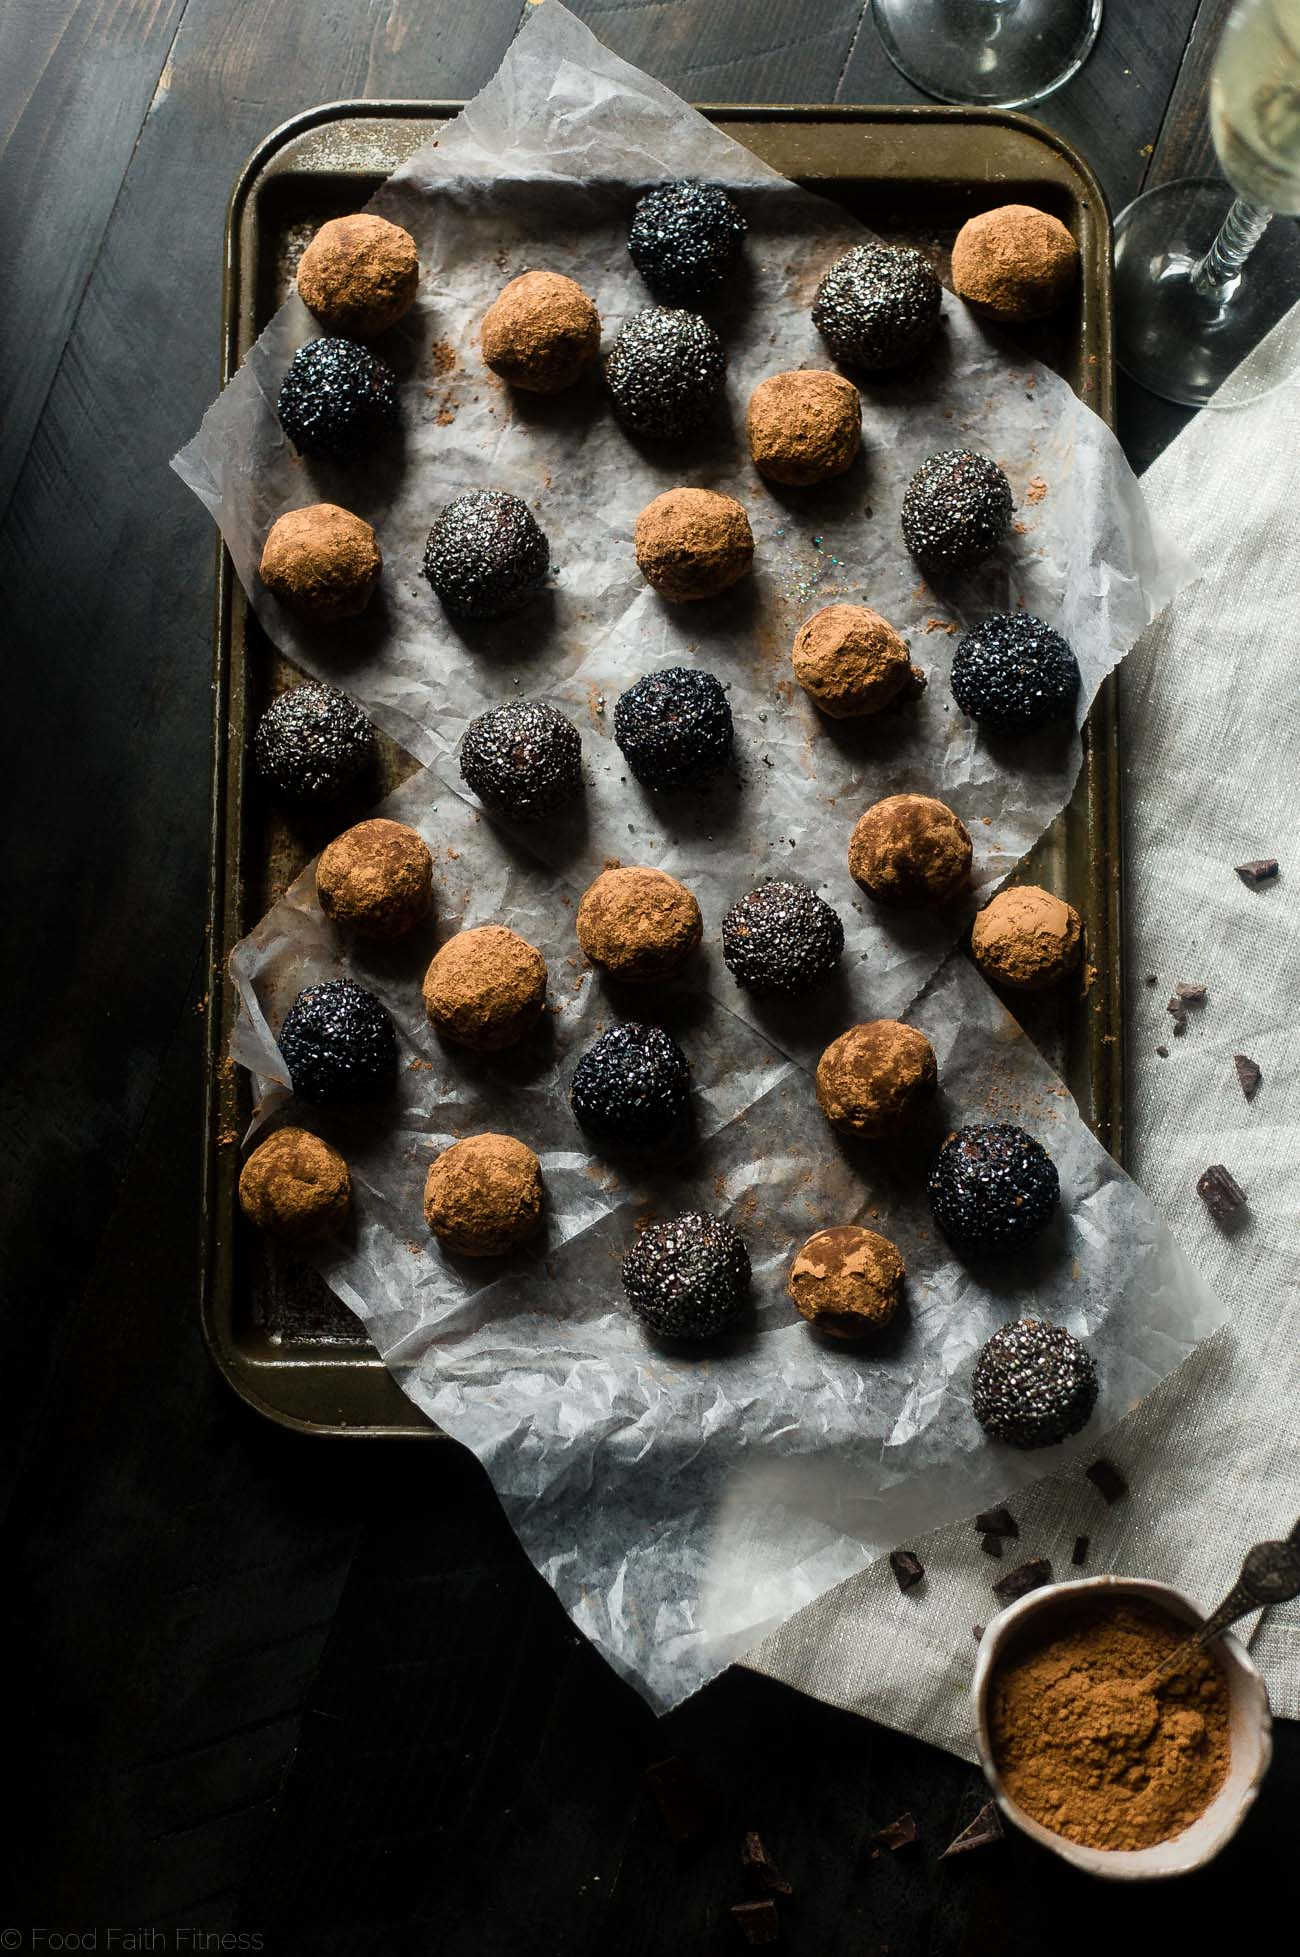 Avocado Vegan Chocolate Truffles with Champagne - These 5 ingredient, vegan truffles use a secret, heart-healthy ingredient to make them so creamy and only 60 calories! A little champagne makes them perfect for New years Eve! | #Foodfaithfitness | #Glutenfree #Vegan #Healthy #Avocado #Truffles